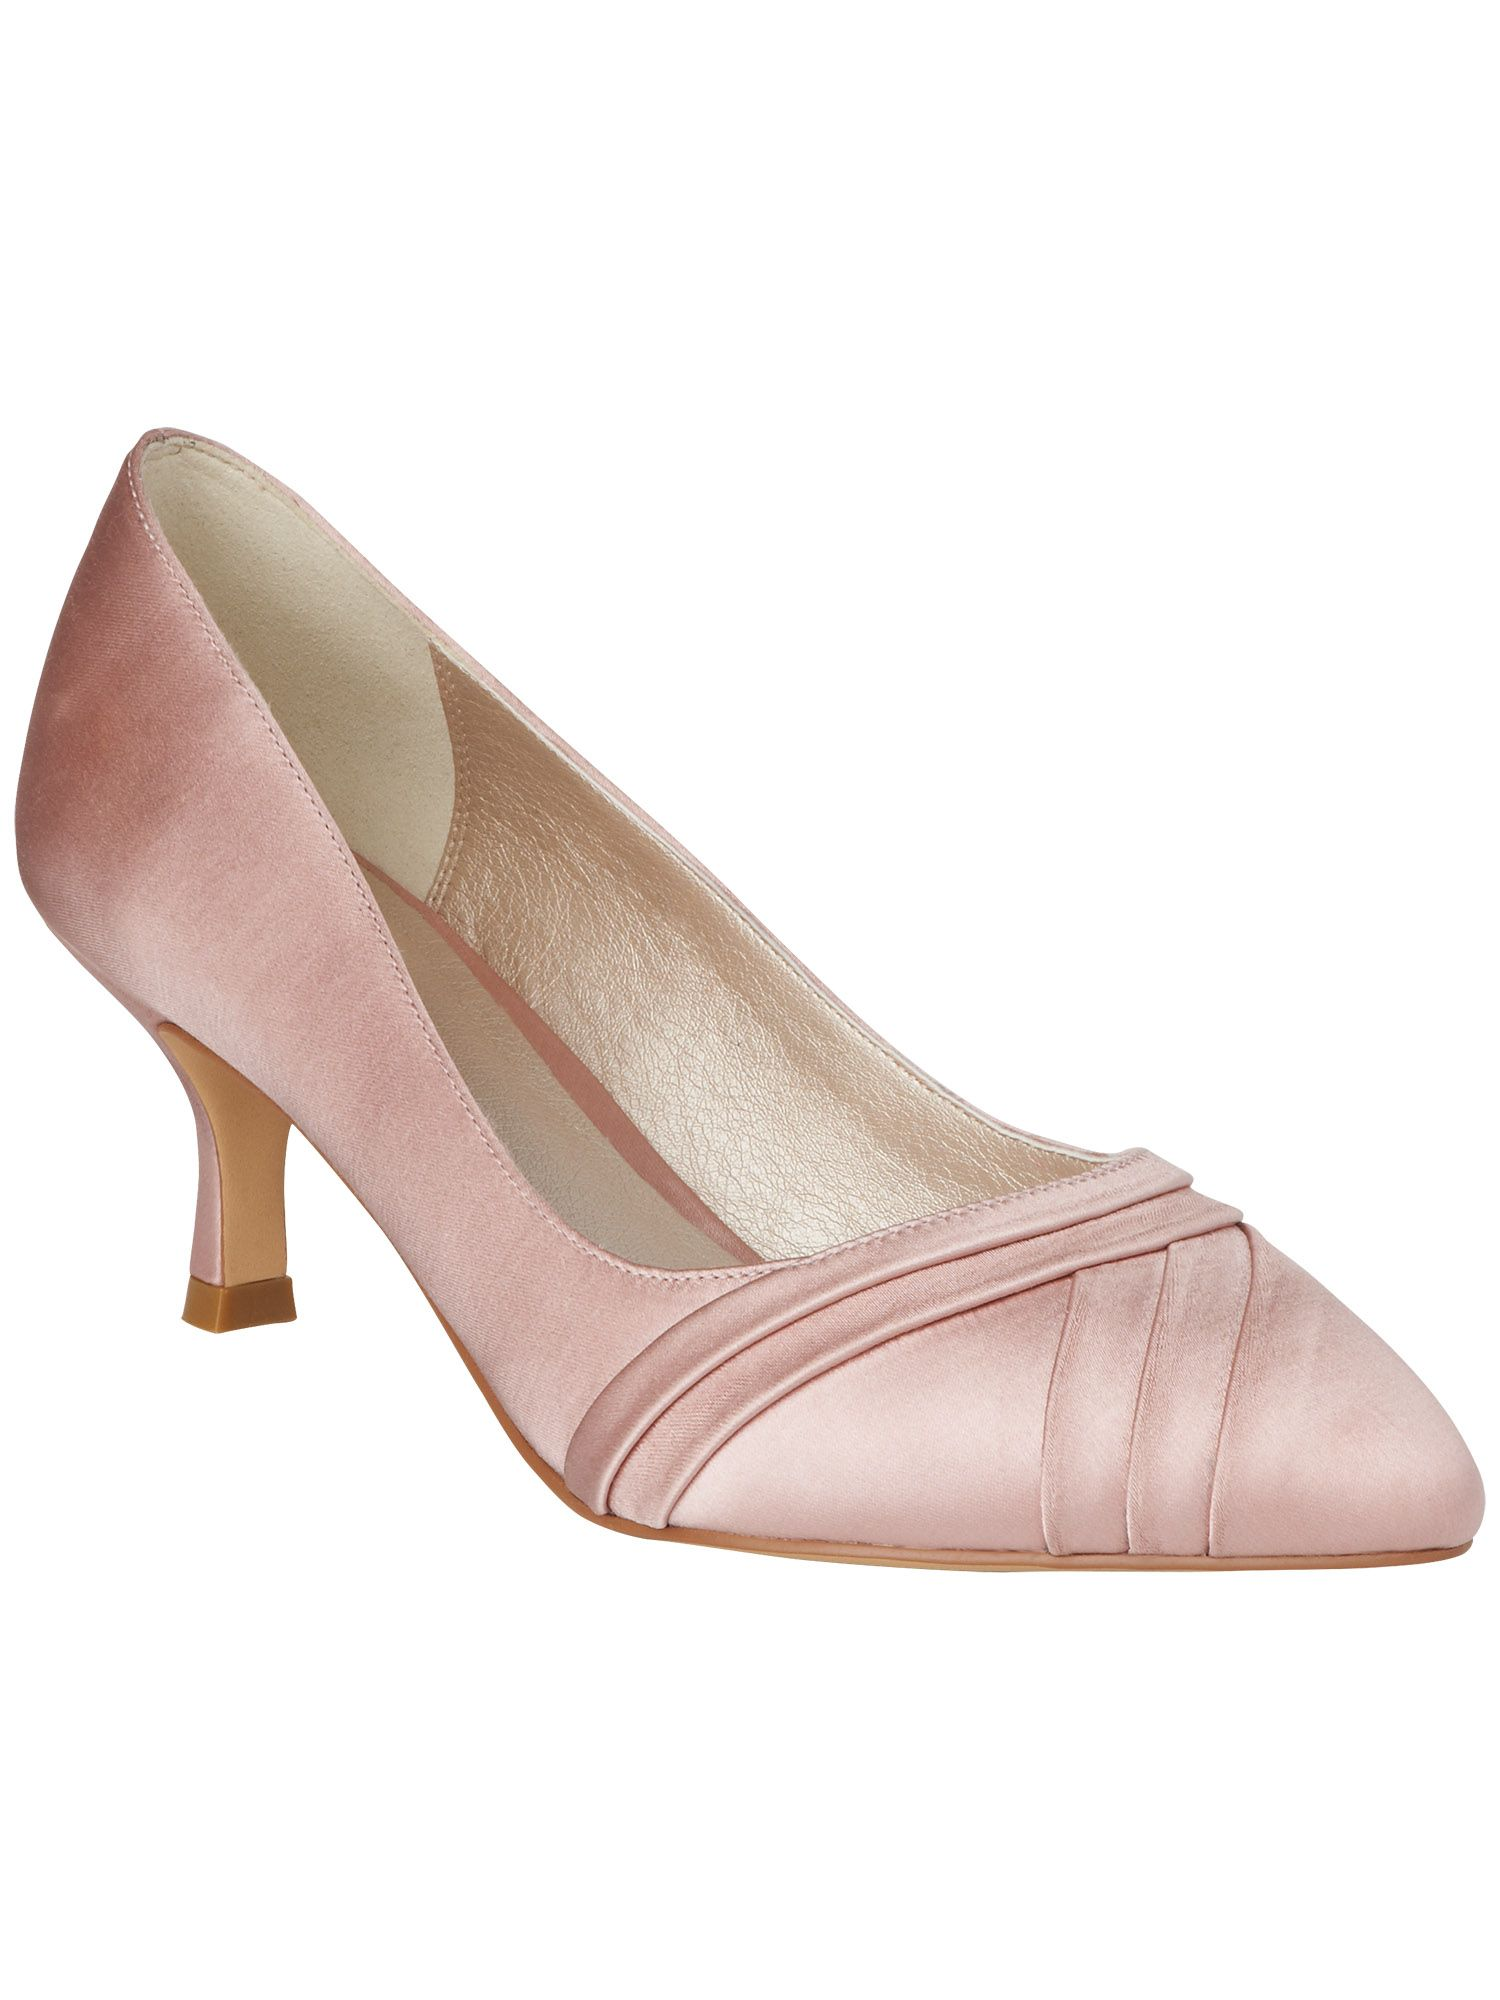 Aliana satin court shoes